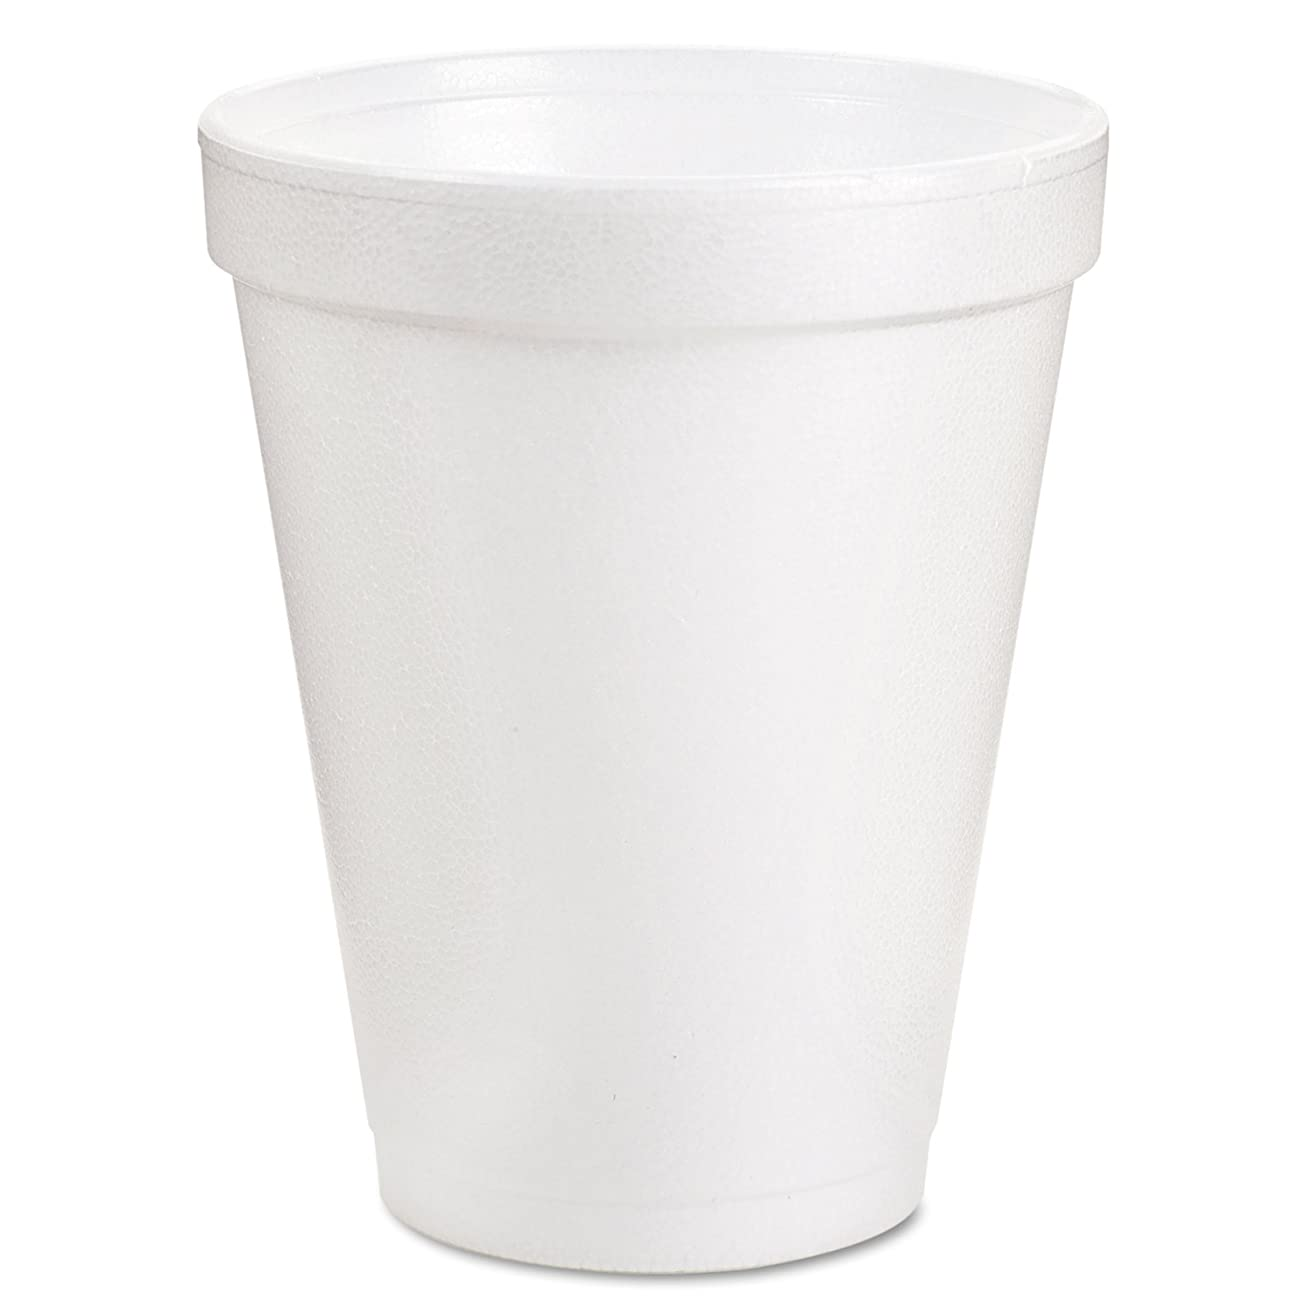 Dart Container Corp. 209-8J8 8J8 Foam Cups, 8 oz, White (Pack of 1000)